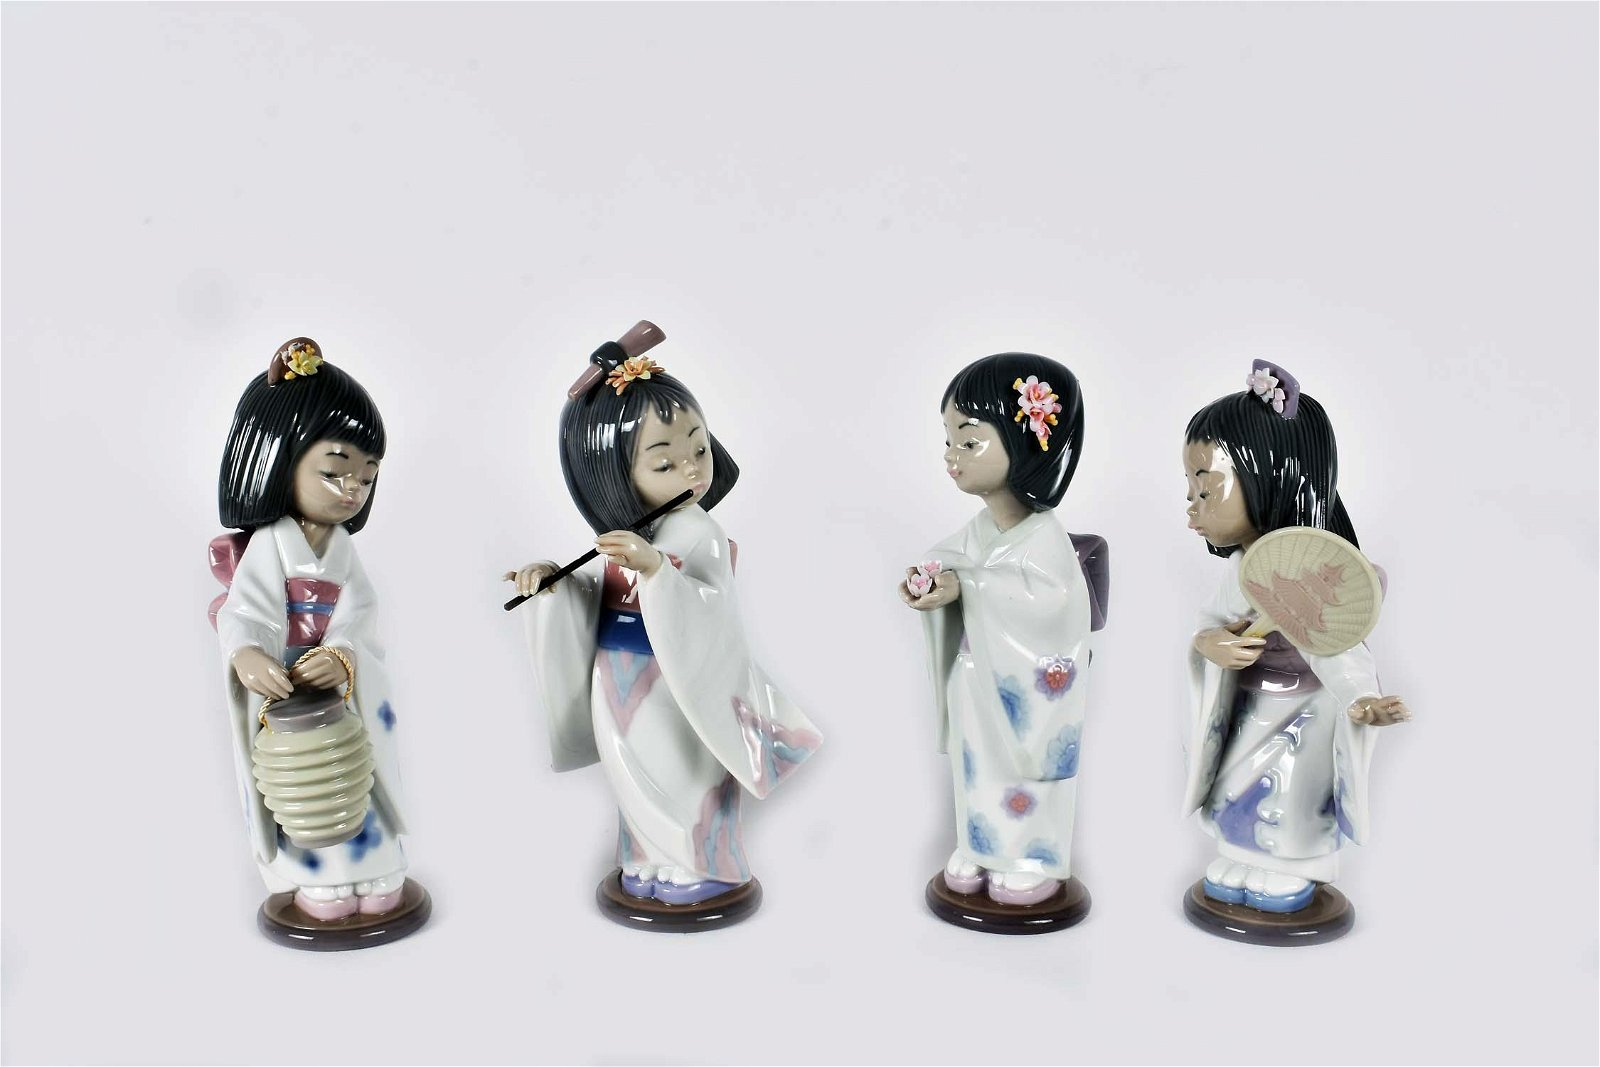 FOUR LLADRO PORCELAIN FIGURES OF JAPANESE GIRLS